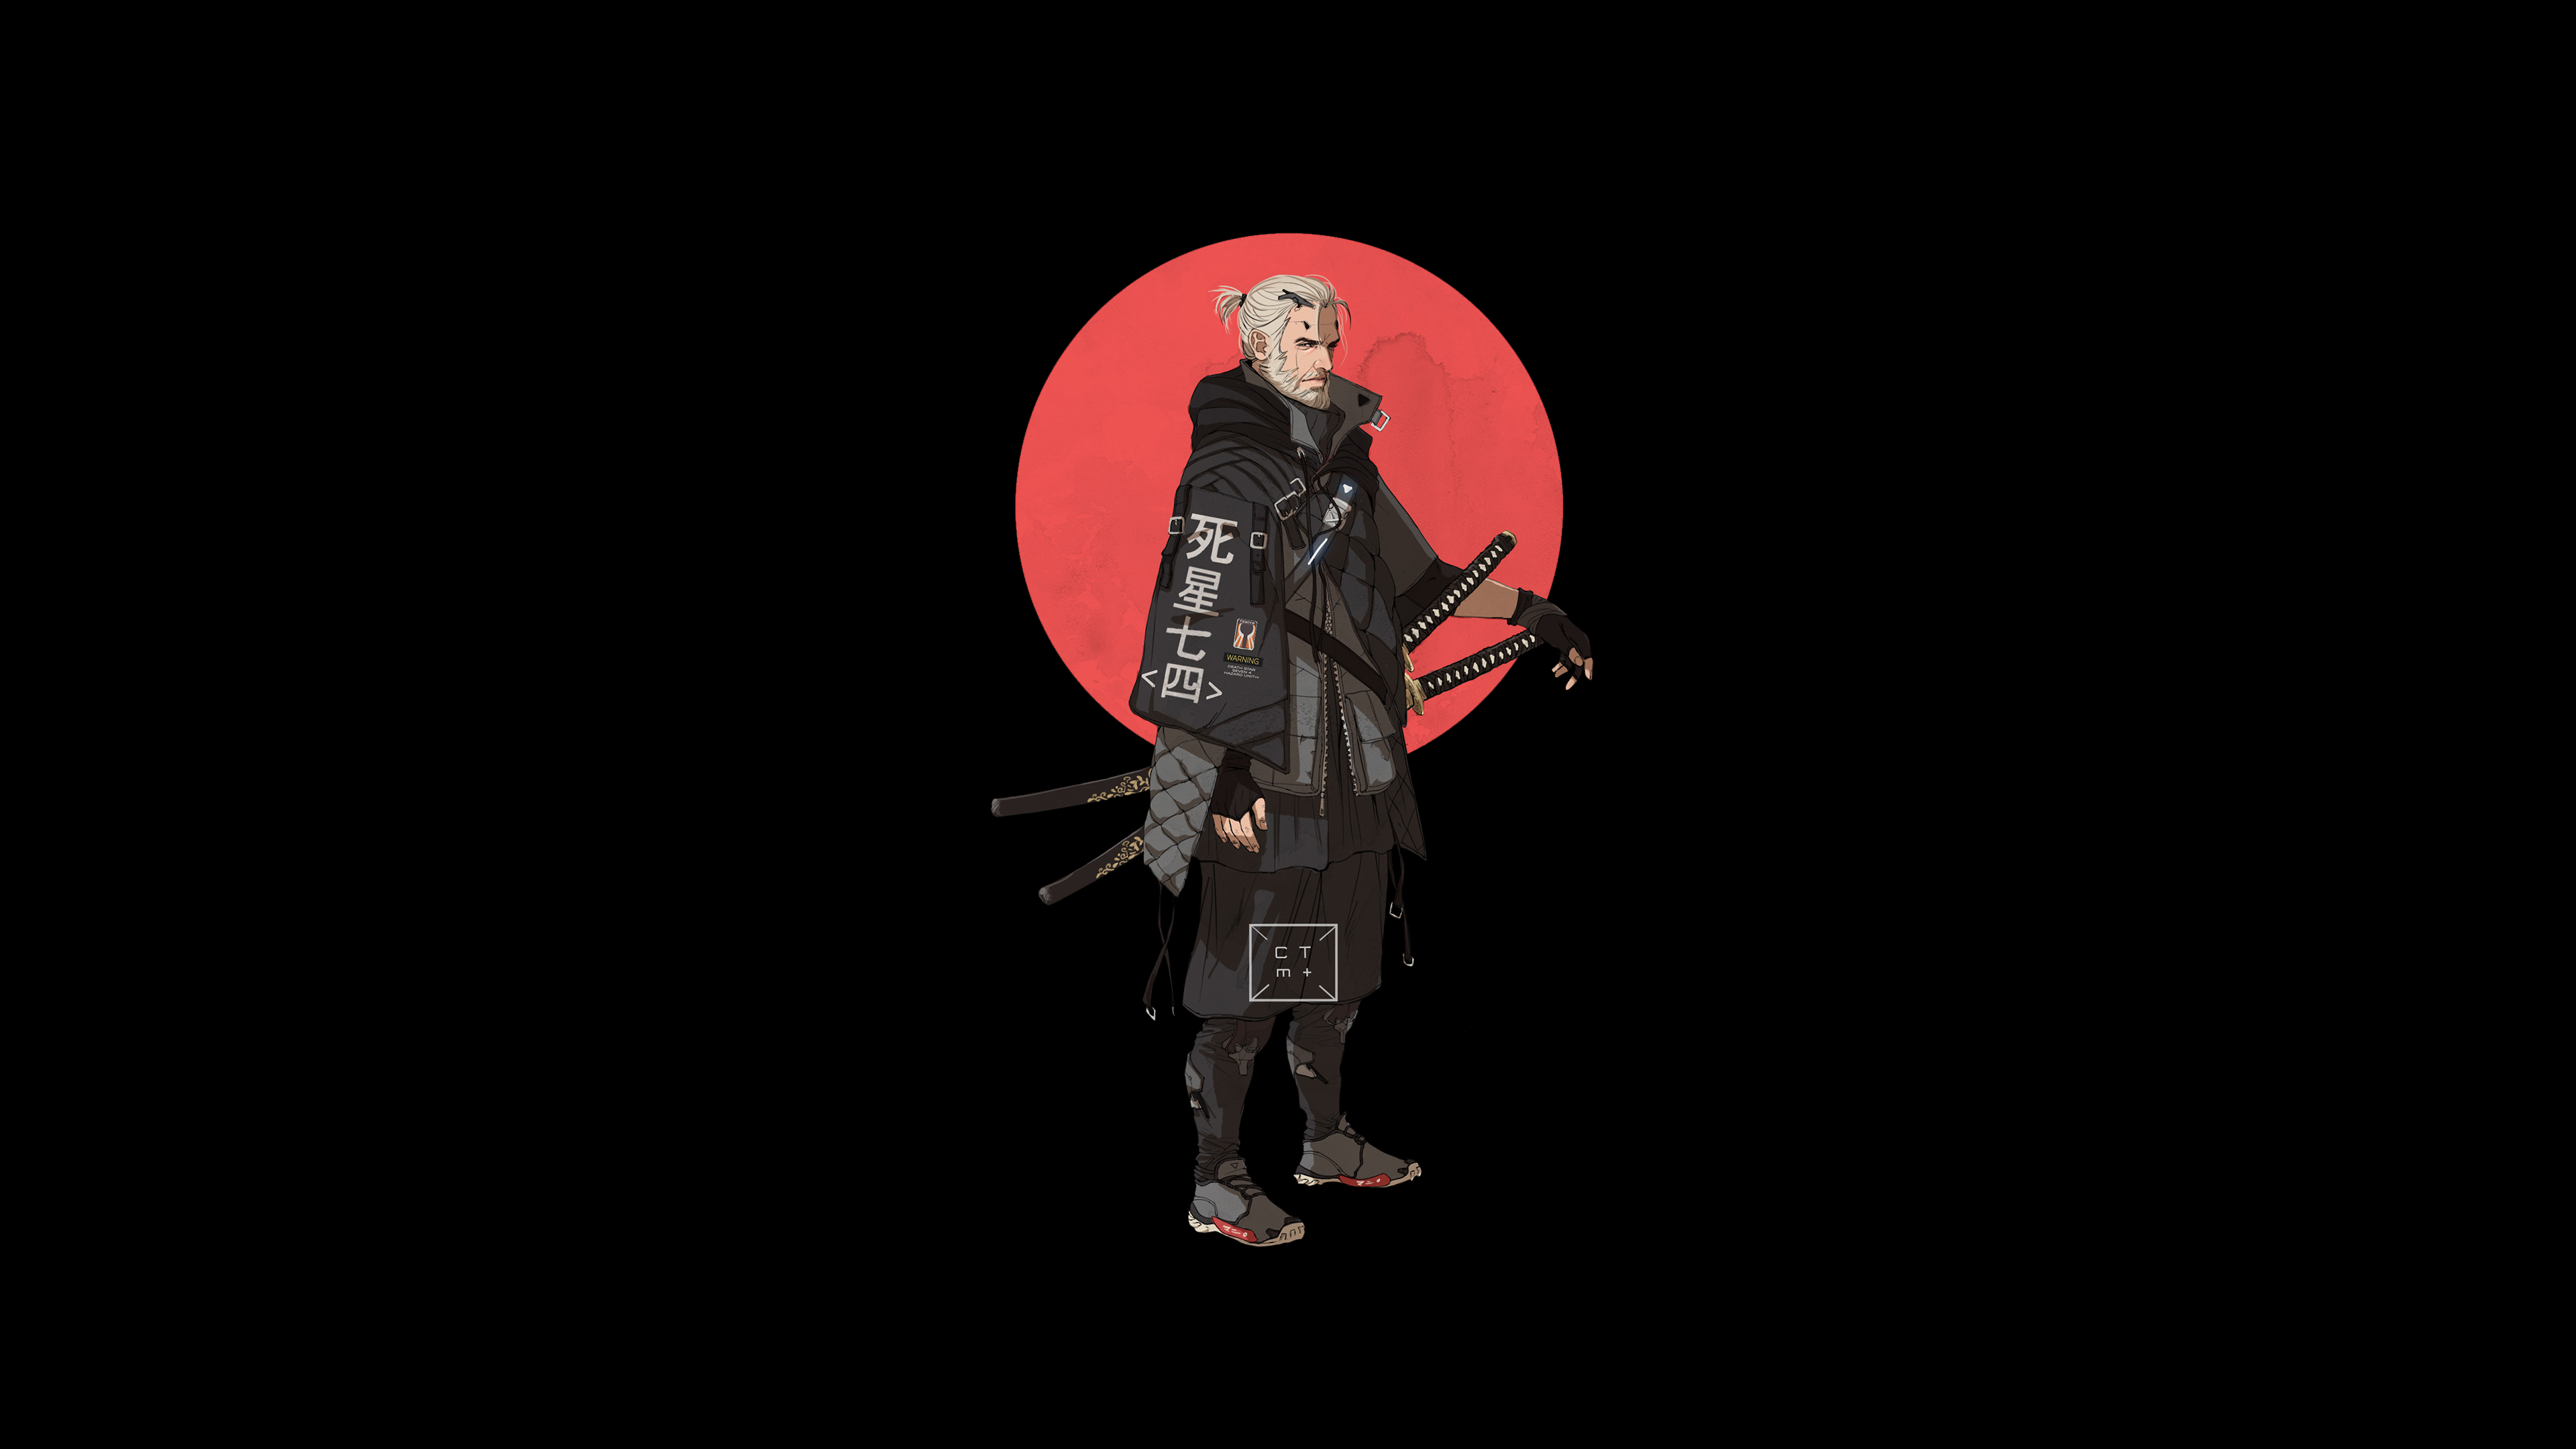 Anime 3840x2160 katana Geralt of Rivia black background minimalism simple background The Witcher